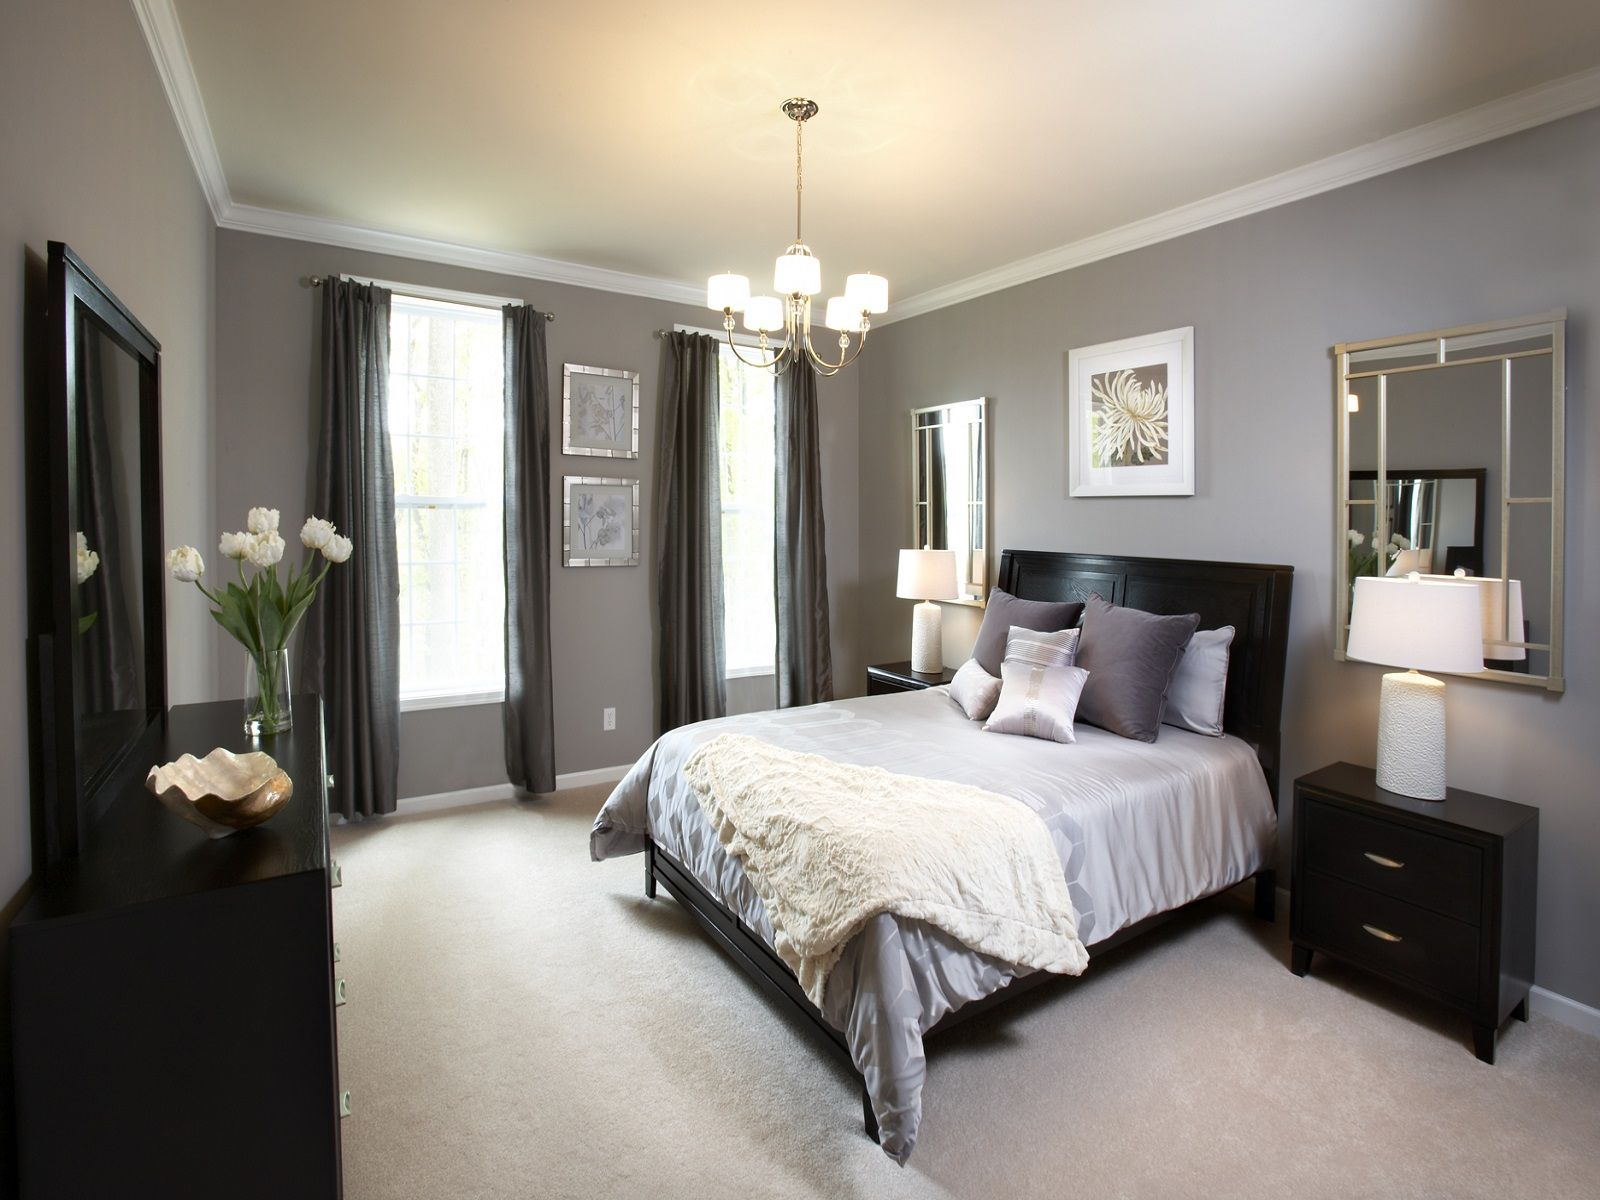 Dark purple bedroom colors - Bedroom Paint Color Ideas For Master Bedroom Buffet With Mirror Pendant Light